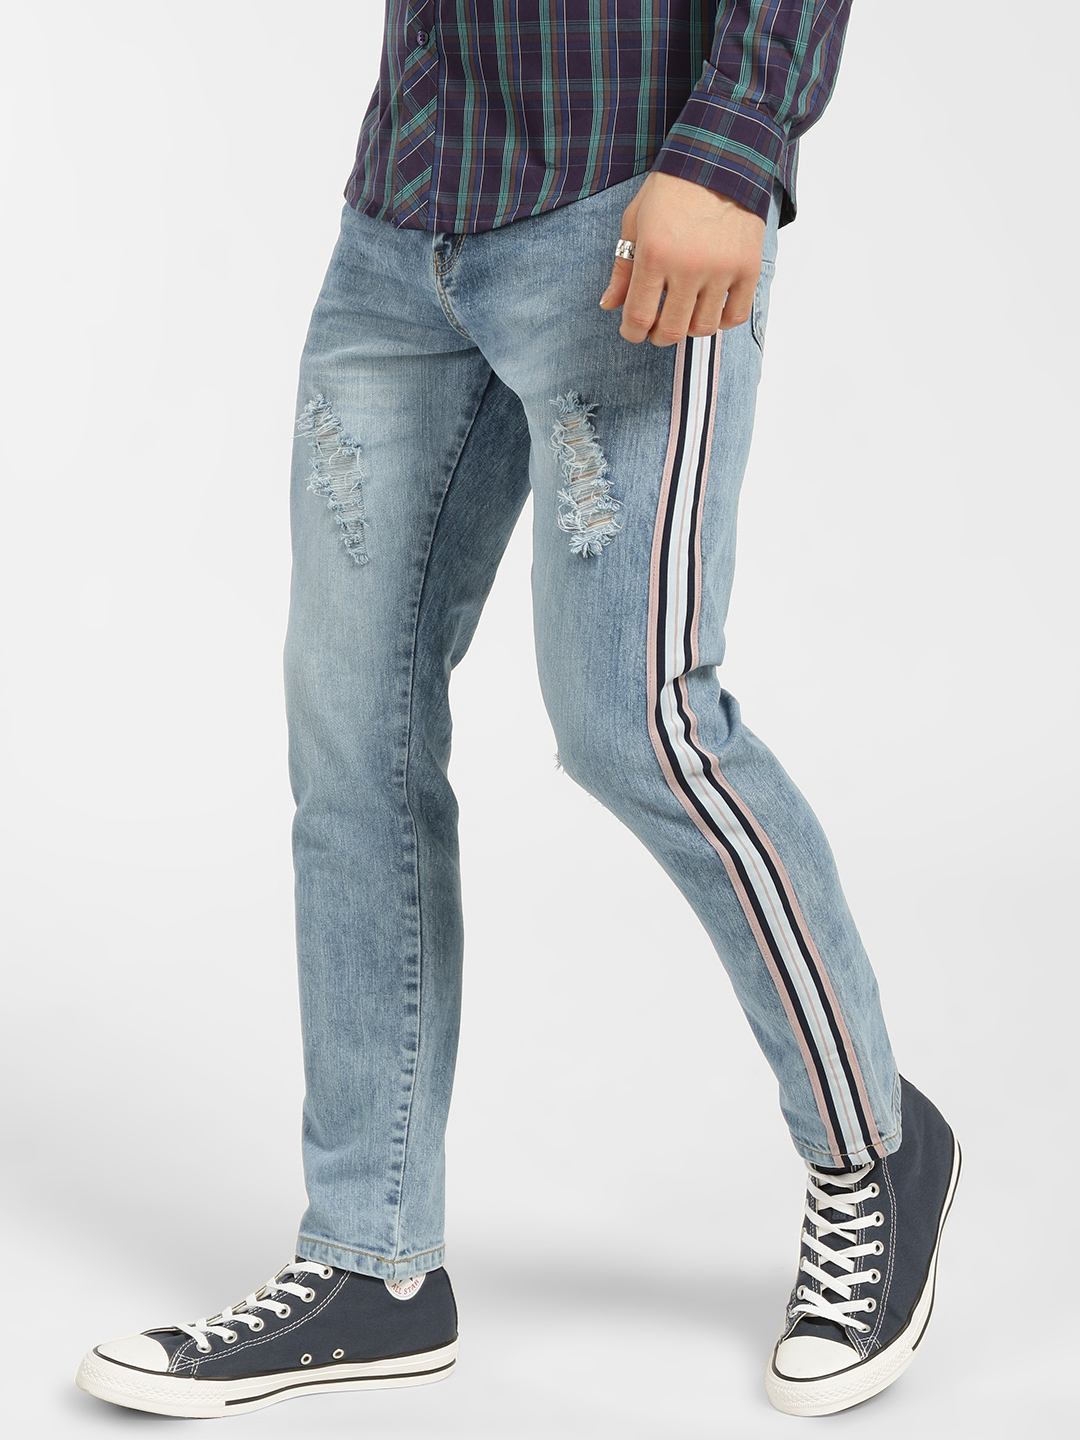 Deezeno Blue Light Wash Contrast Tape Distressed Jeans 1